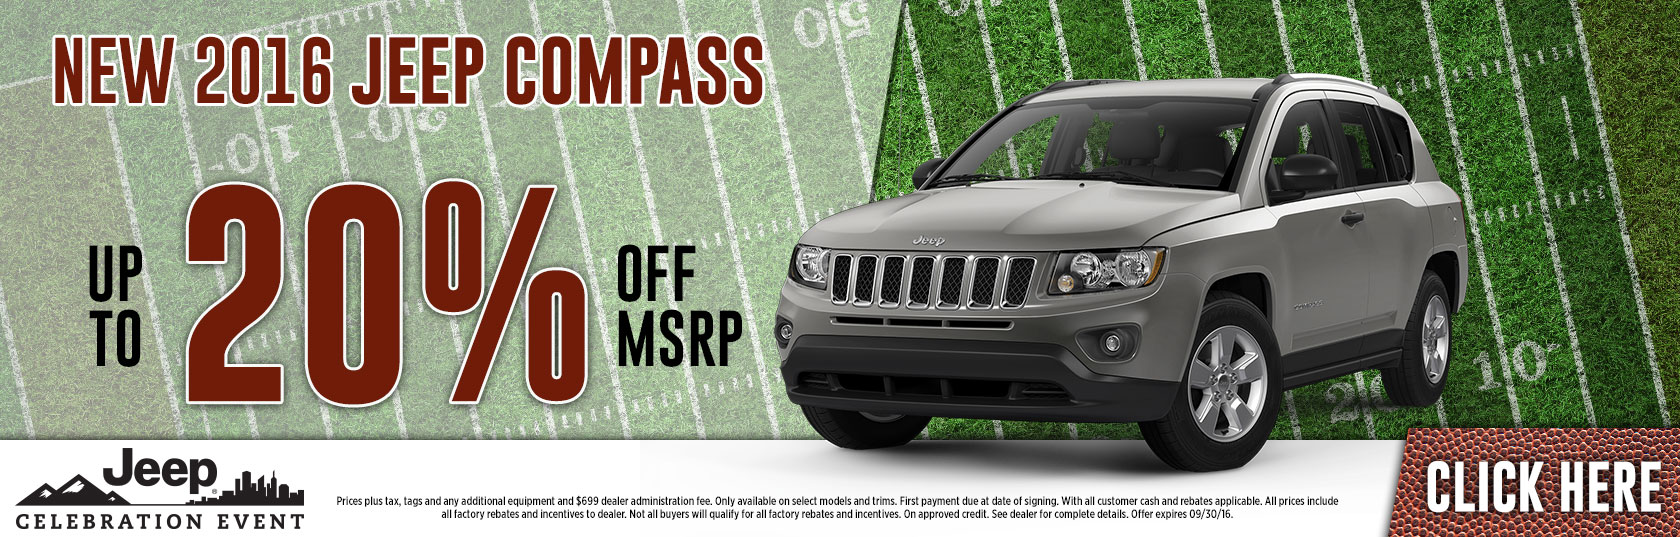 Chrysler Dodge Jeep Ram New Amp Used Cars For Sale